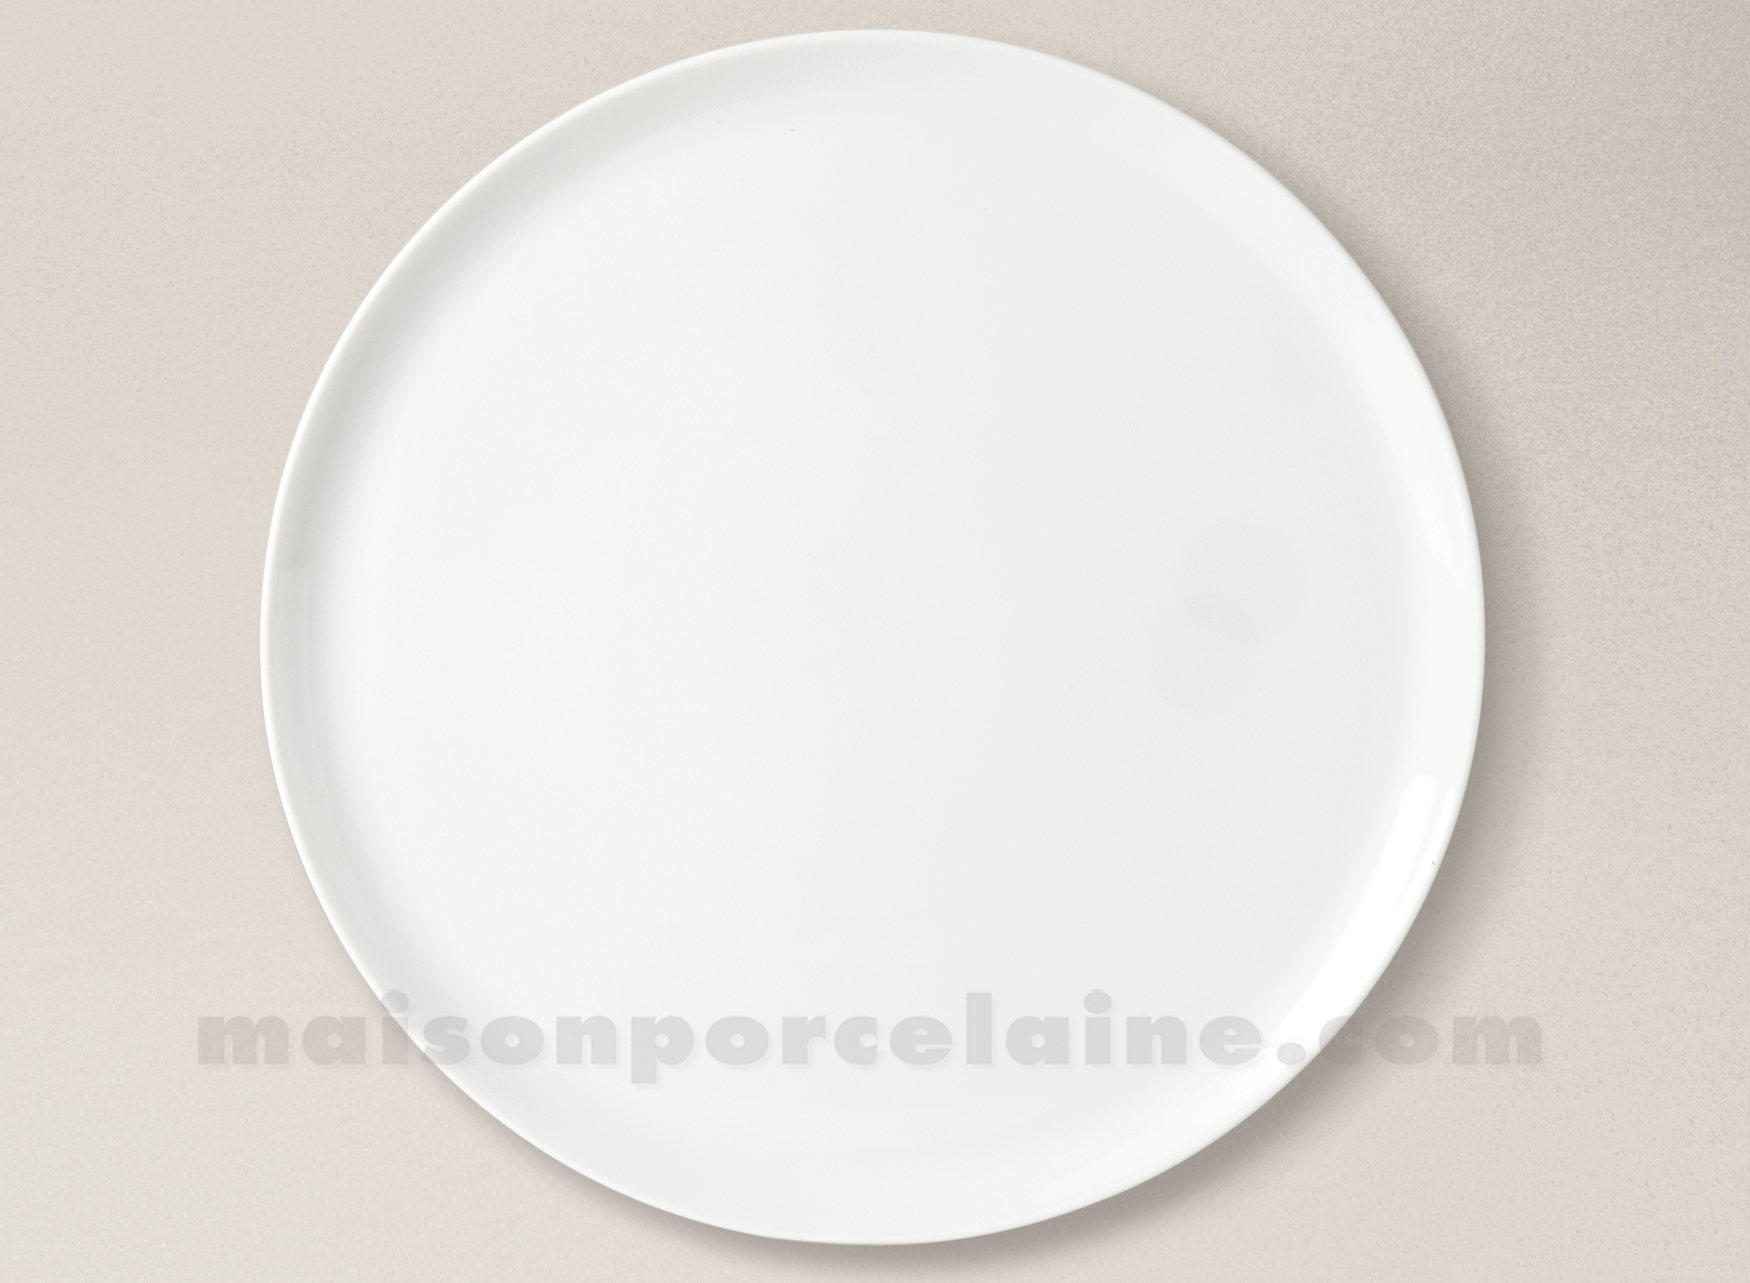 assiette plate porcelaine blanche yaka 27 5cm maison de la porcelaine. Black Bedroom Furniture Sets. Home Design Ideas